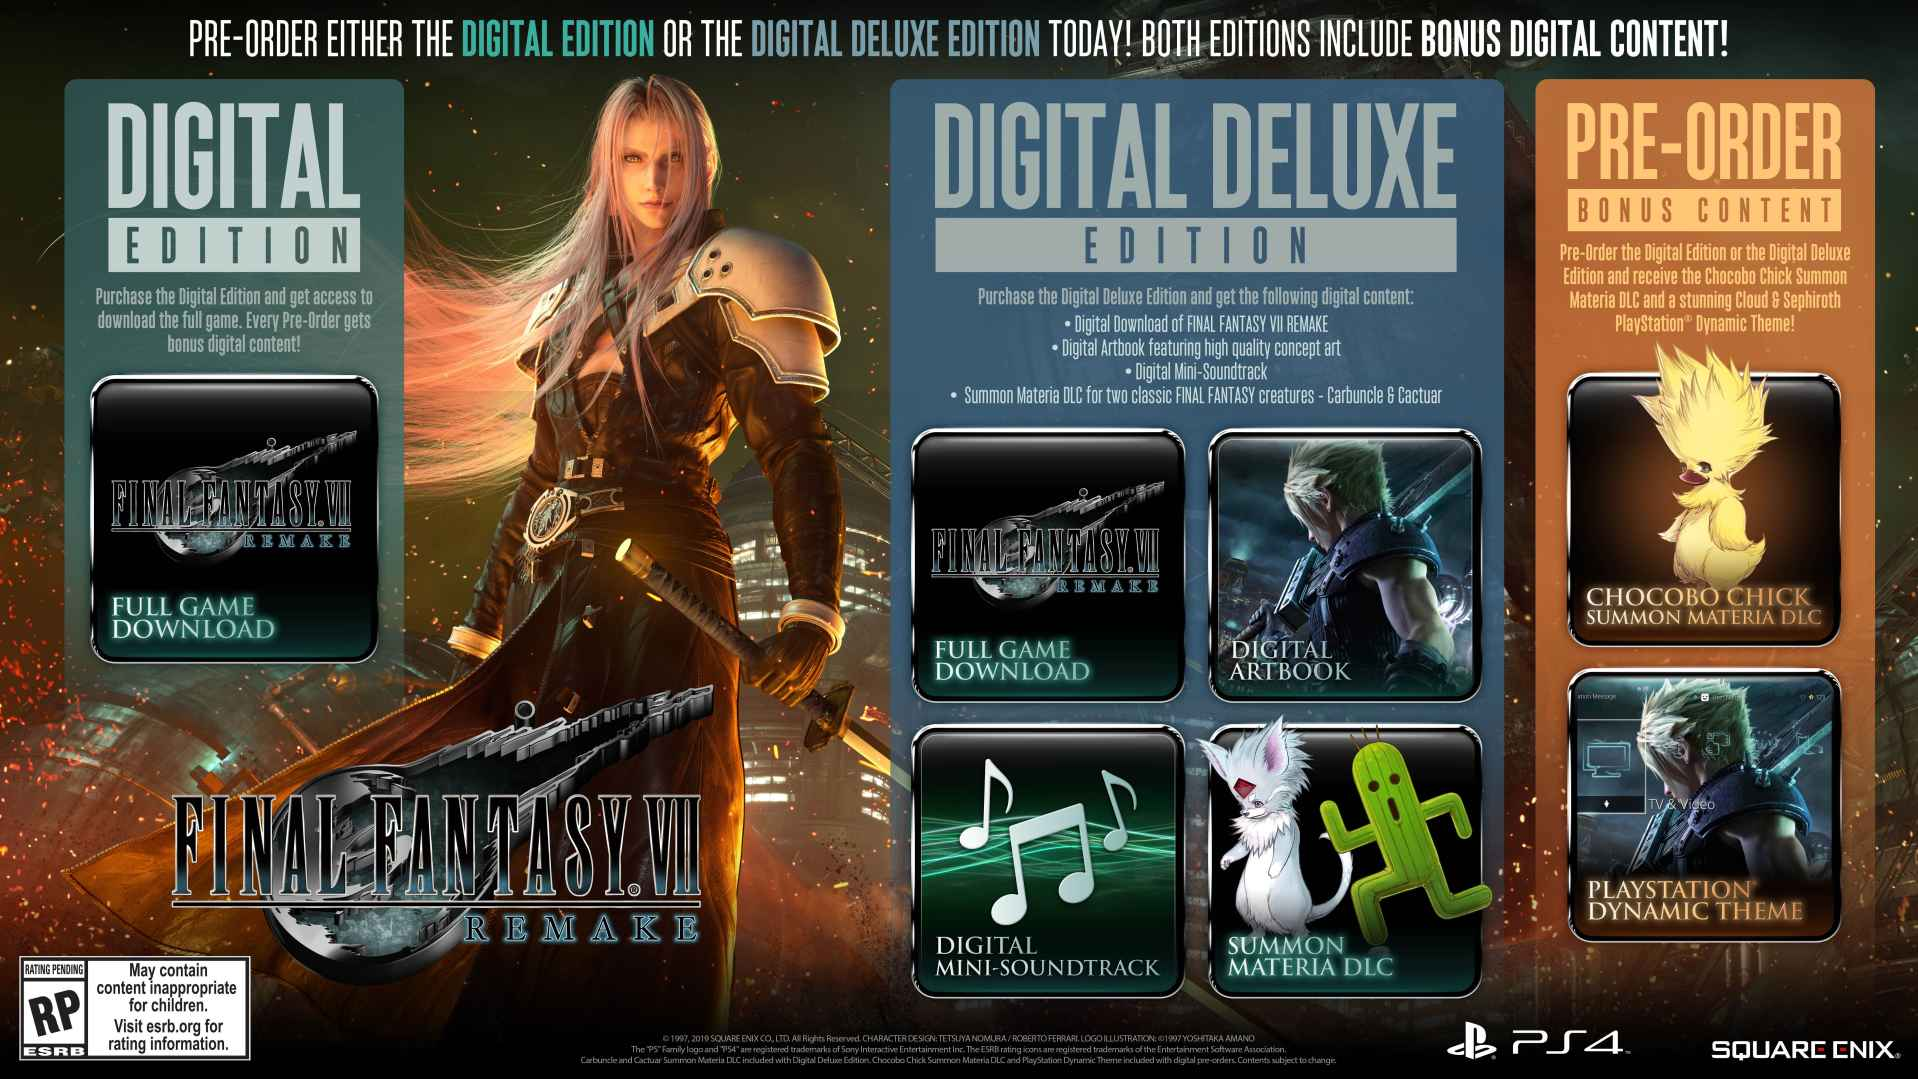 Final-Fantasy-VII-Remake-Digital-Deluxe-Edition-Bild-1